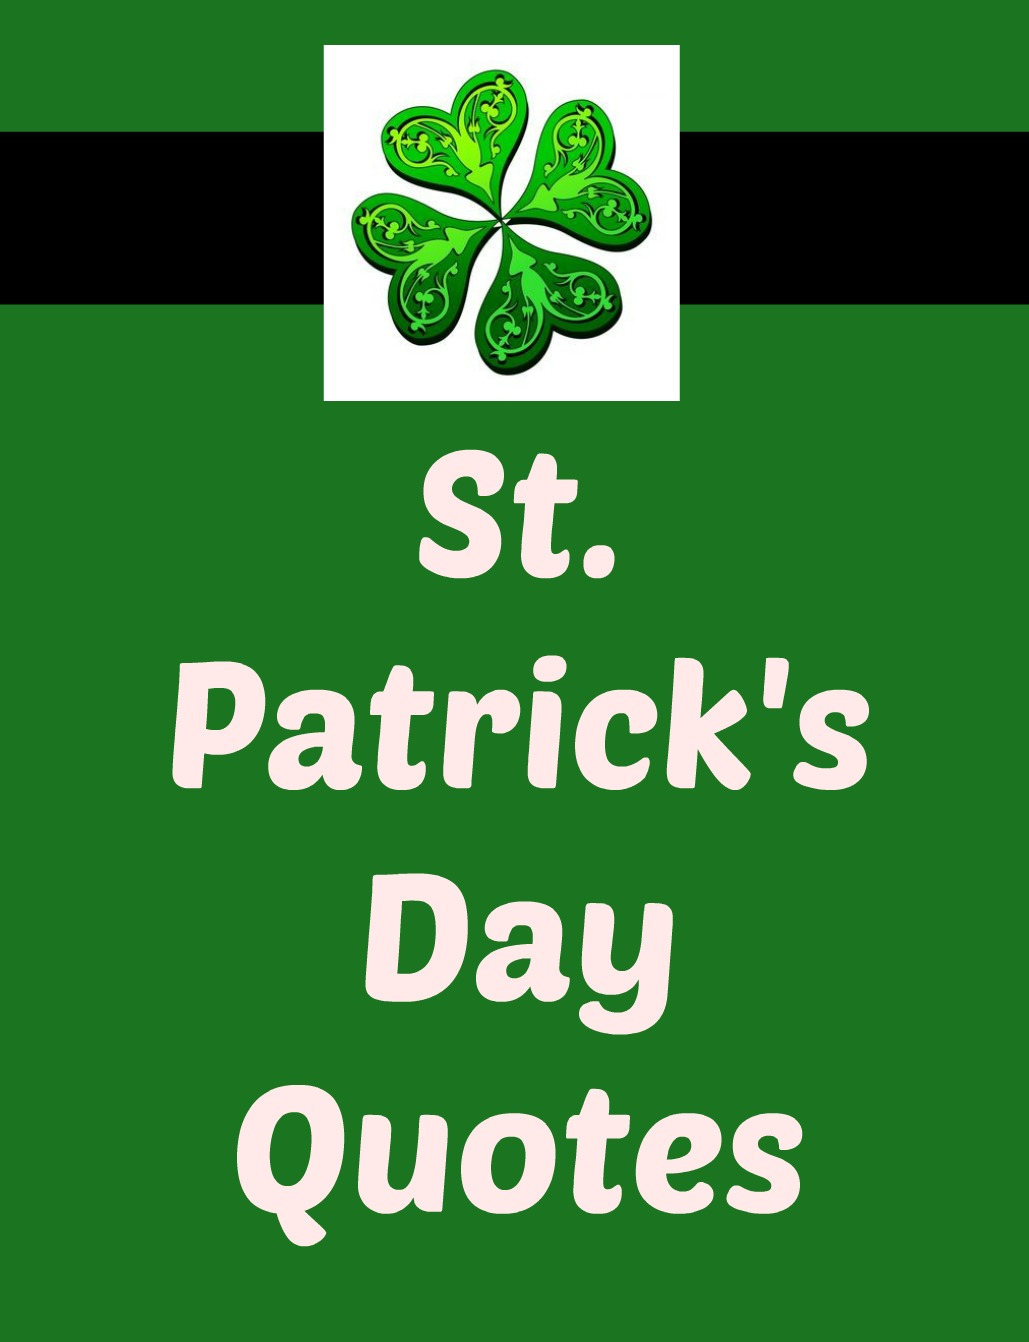 Irish quotes archives joyful quotes for Funny irish sayings for st patrick day